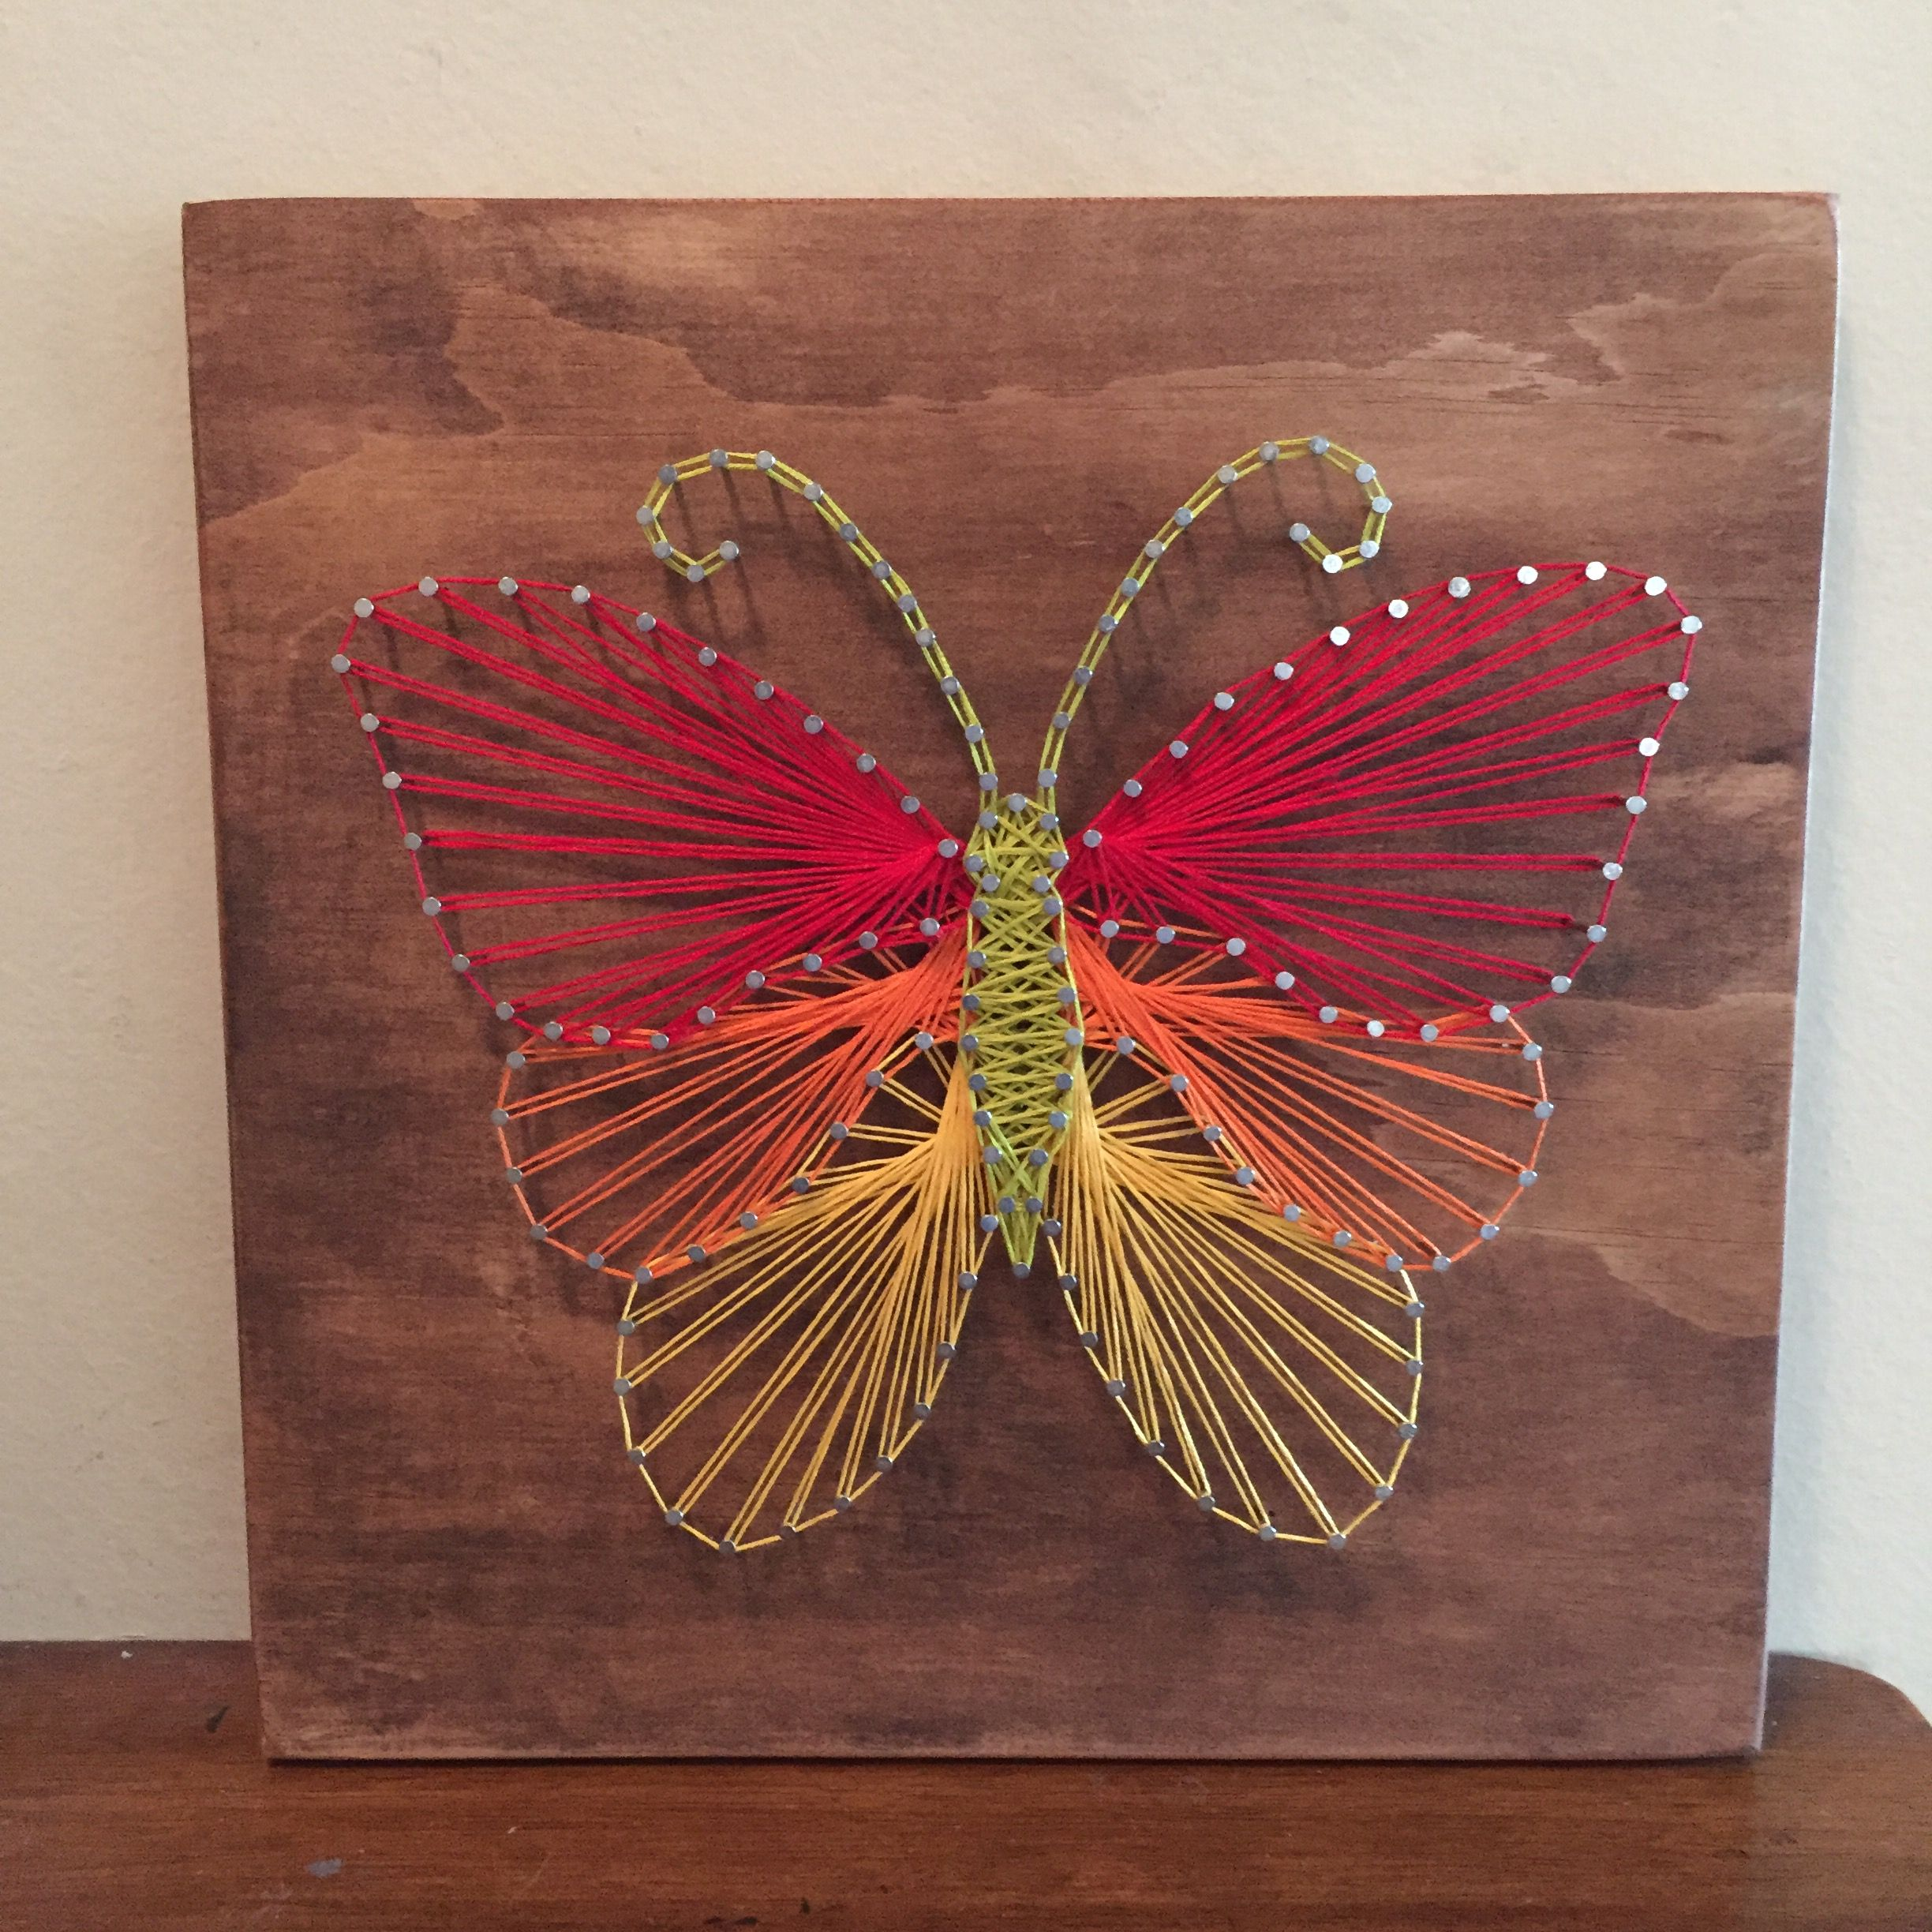 Butterfly String Art | String Rope Ideas | Pinterest | String art ...